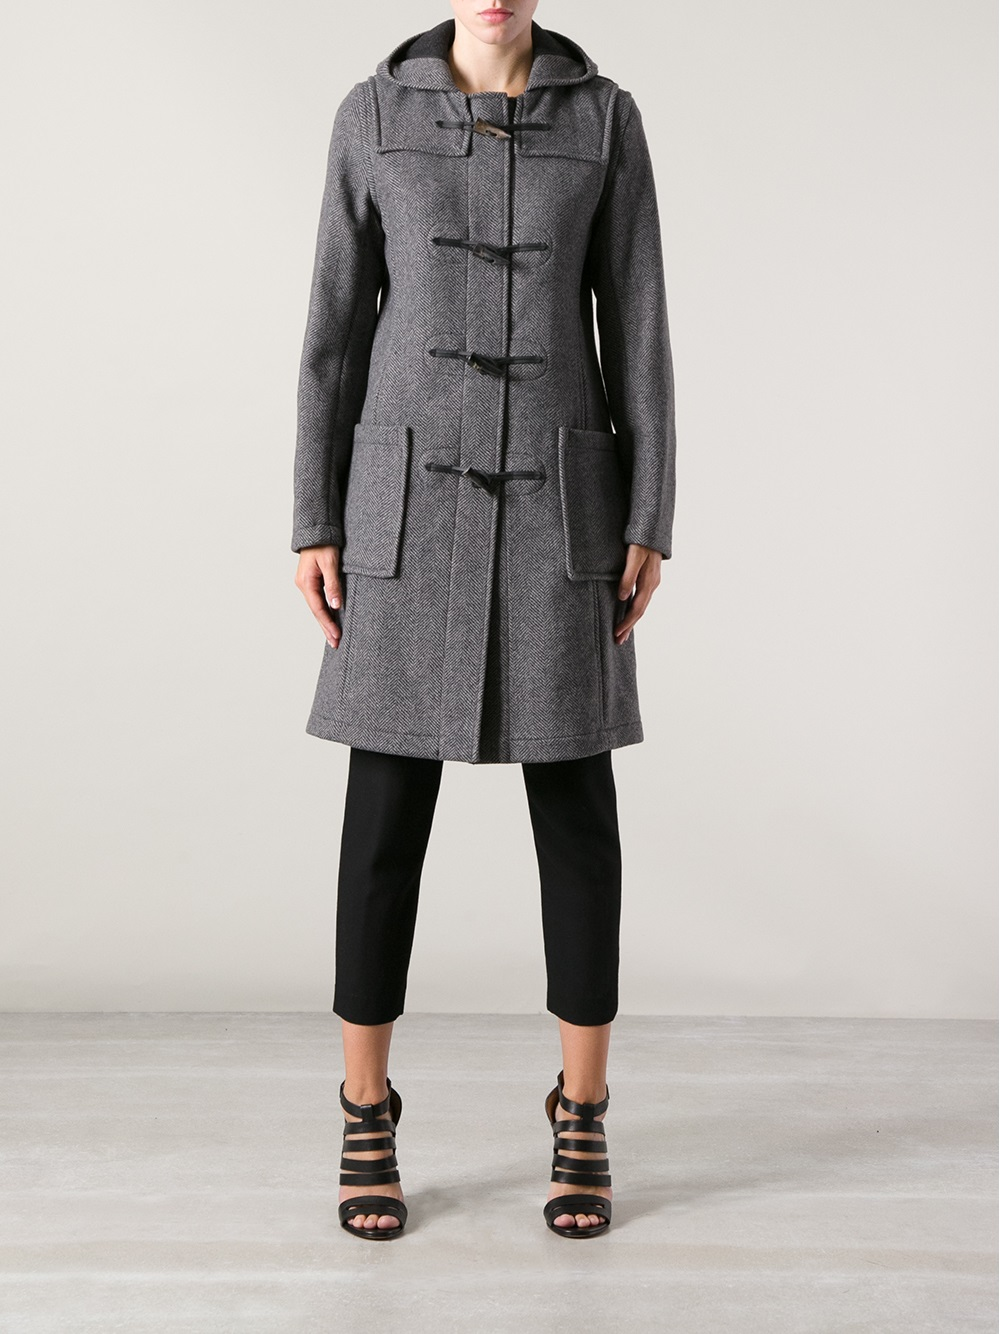 Gloverall Duffle Coat in Gray   Lyst